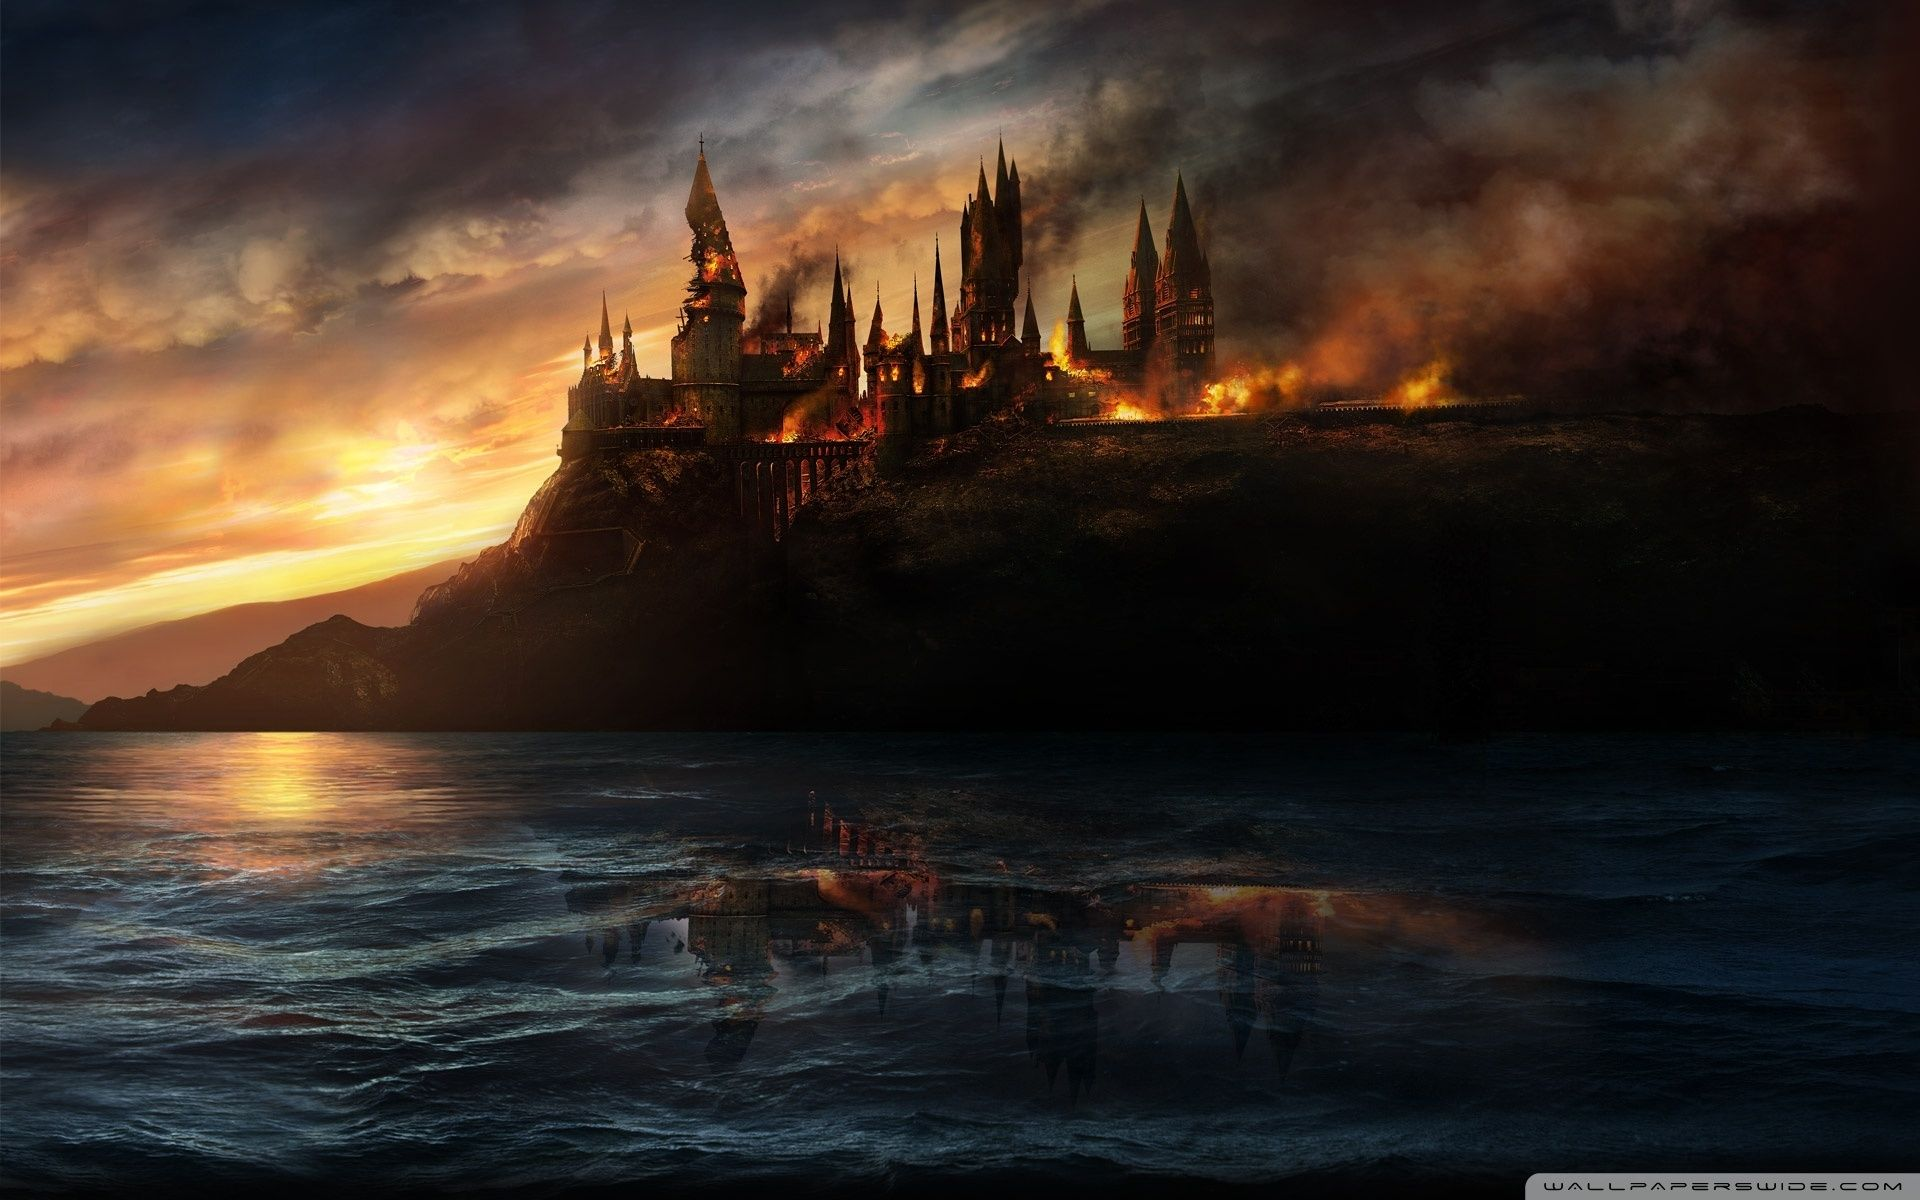 10 Best Hogwarts Hd Wallpapers 1080P FULL HD 1080p For PC Desktop 1920x1200